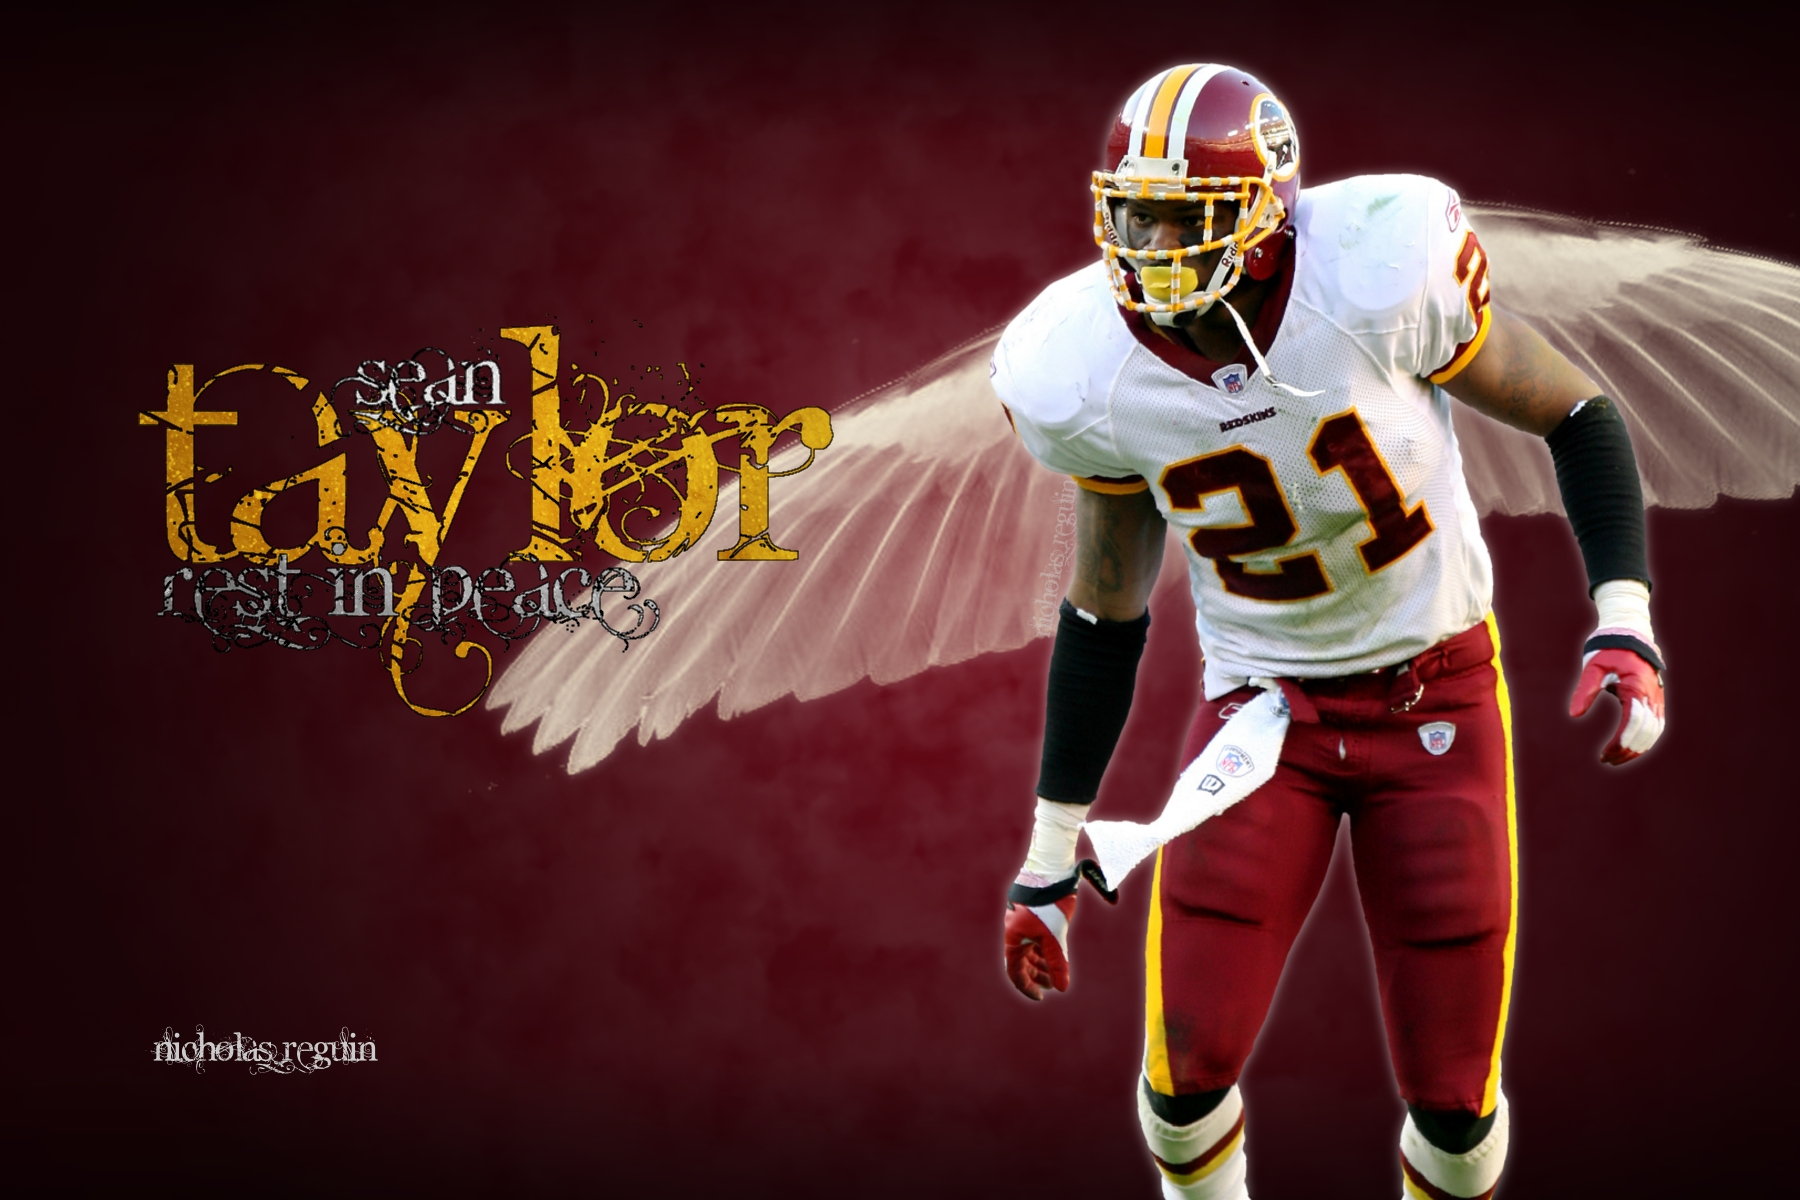 Redskins Wallpaper Sean Taylor Rest In Peace Sean Tay...